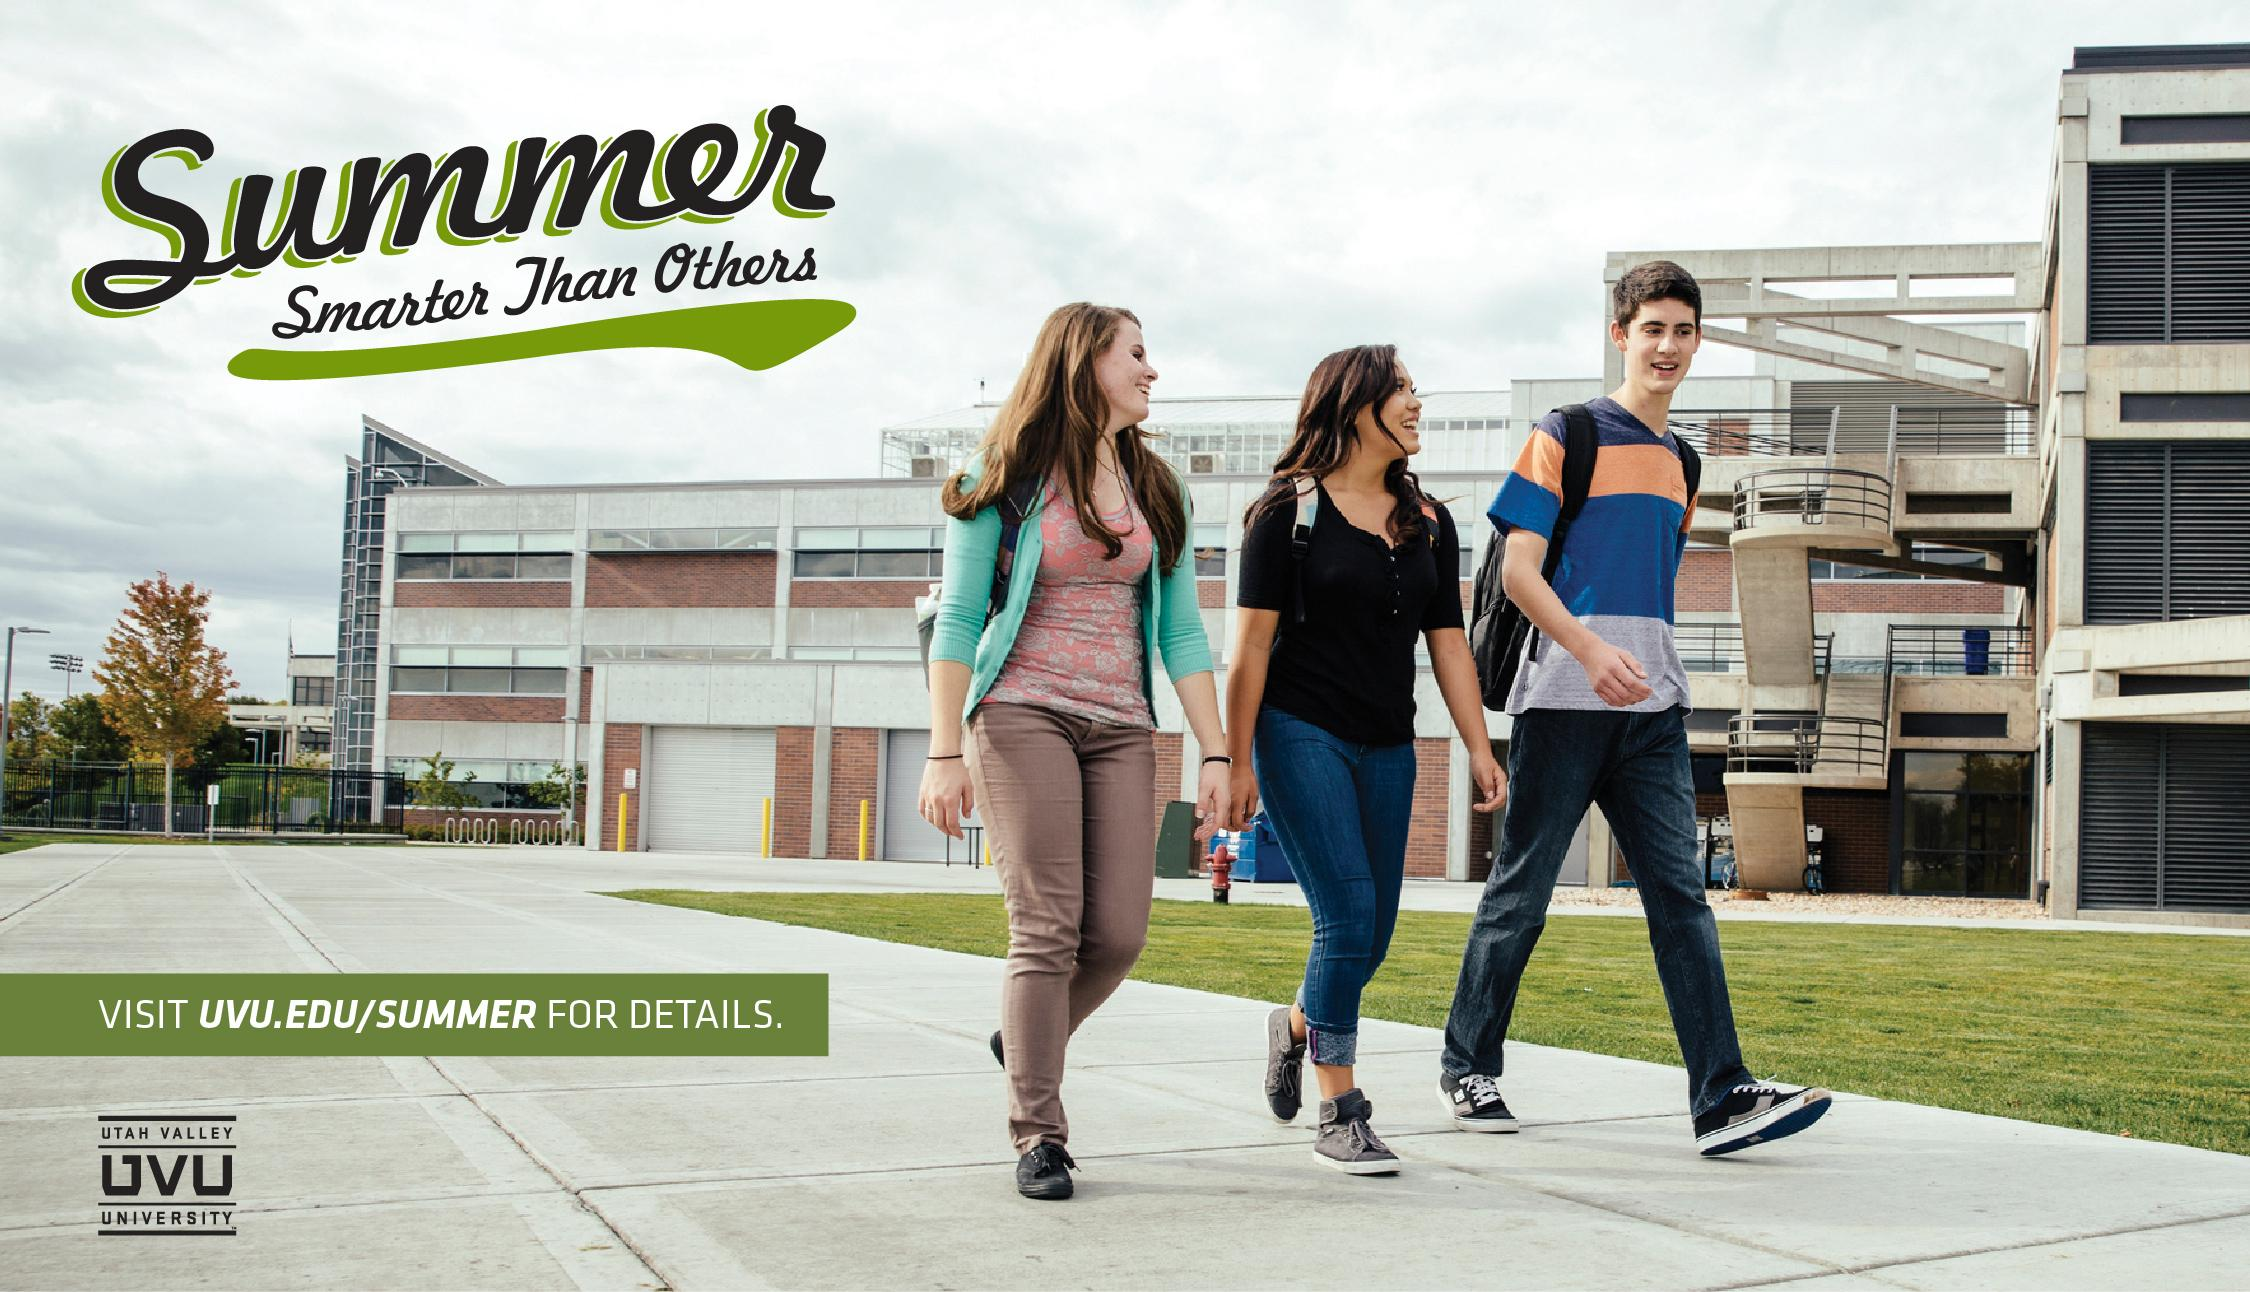 Earn your degree sooner, get into the workforce, and jump-start your career with summer classes at UVU.